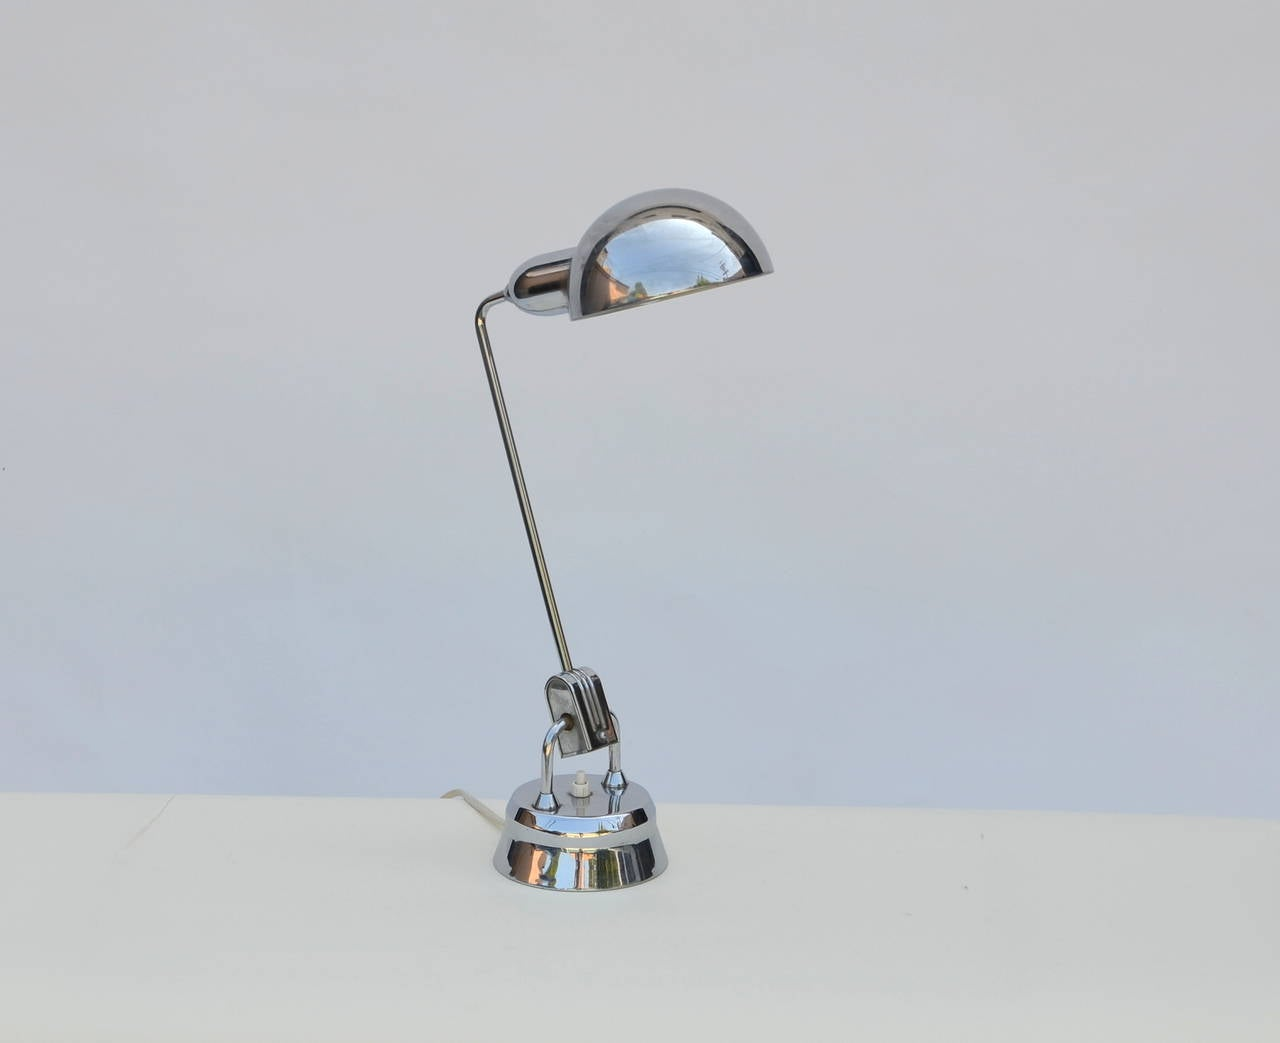 Original Jumo 600 chrome lamp selected by Charlotte Perriand. This lamp was designed by Yves JUjeau, Pierre and Andre MOunique in the 1940s and selected by Charlotte Perriand for some of her projects.